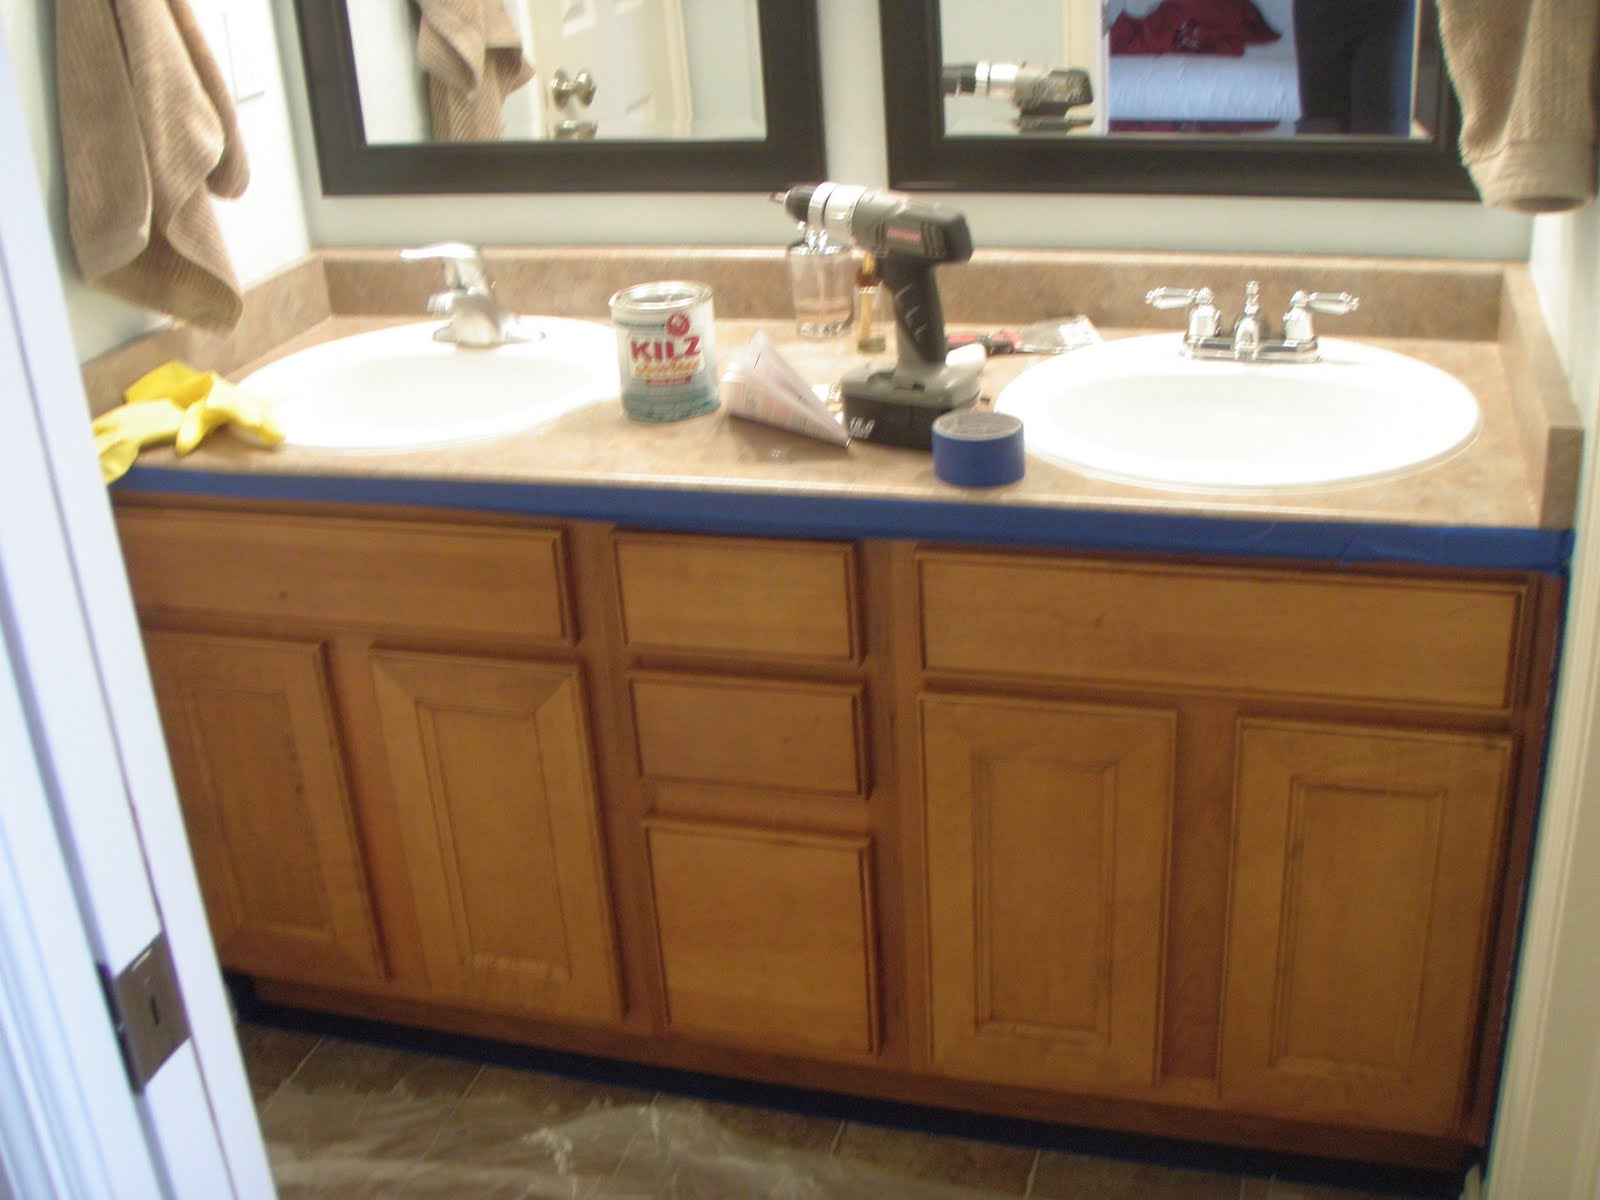 Home Depot Bathroom Paint  Home Painting Ideas